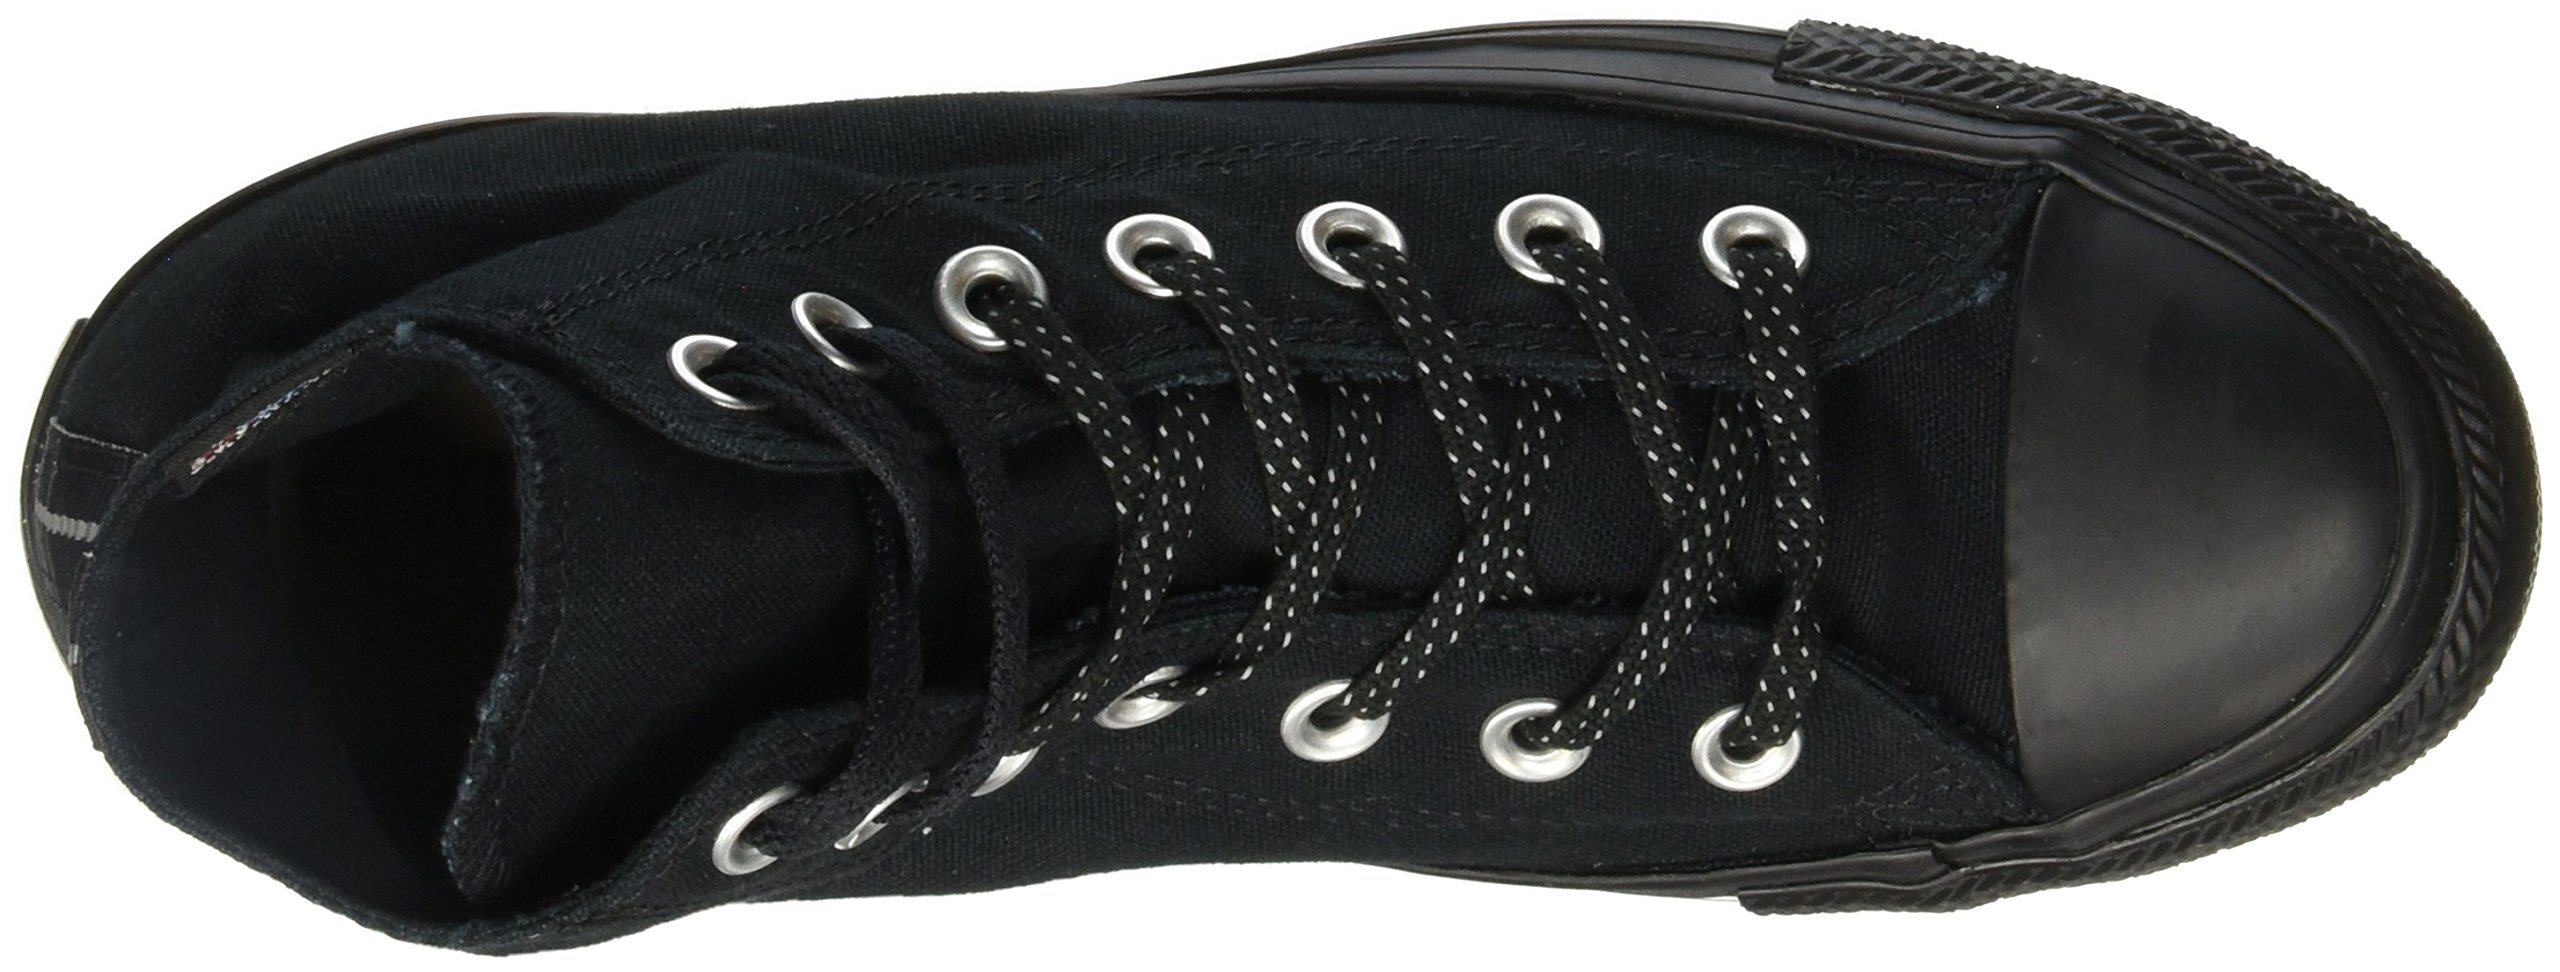 Converse Womens All Star Counter Climate Hi Top Boots - 4 B(M) US, (Black/Mason) by Converse (Image #7)